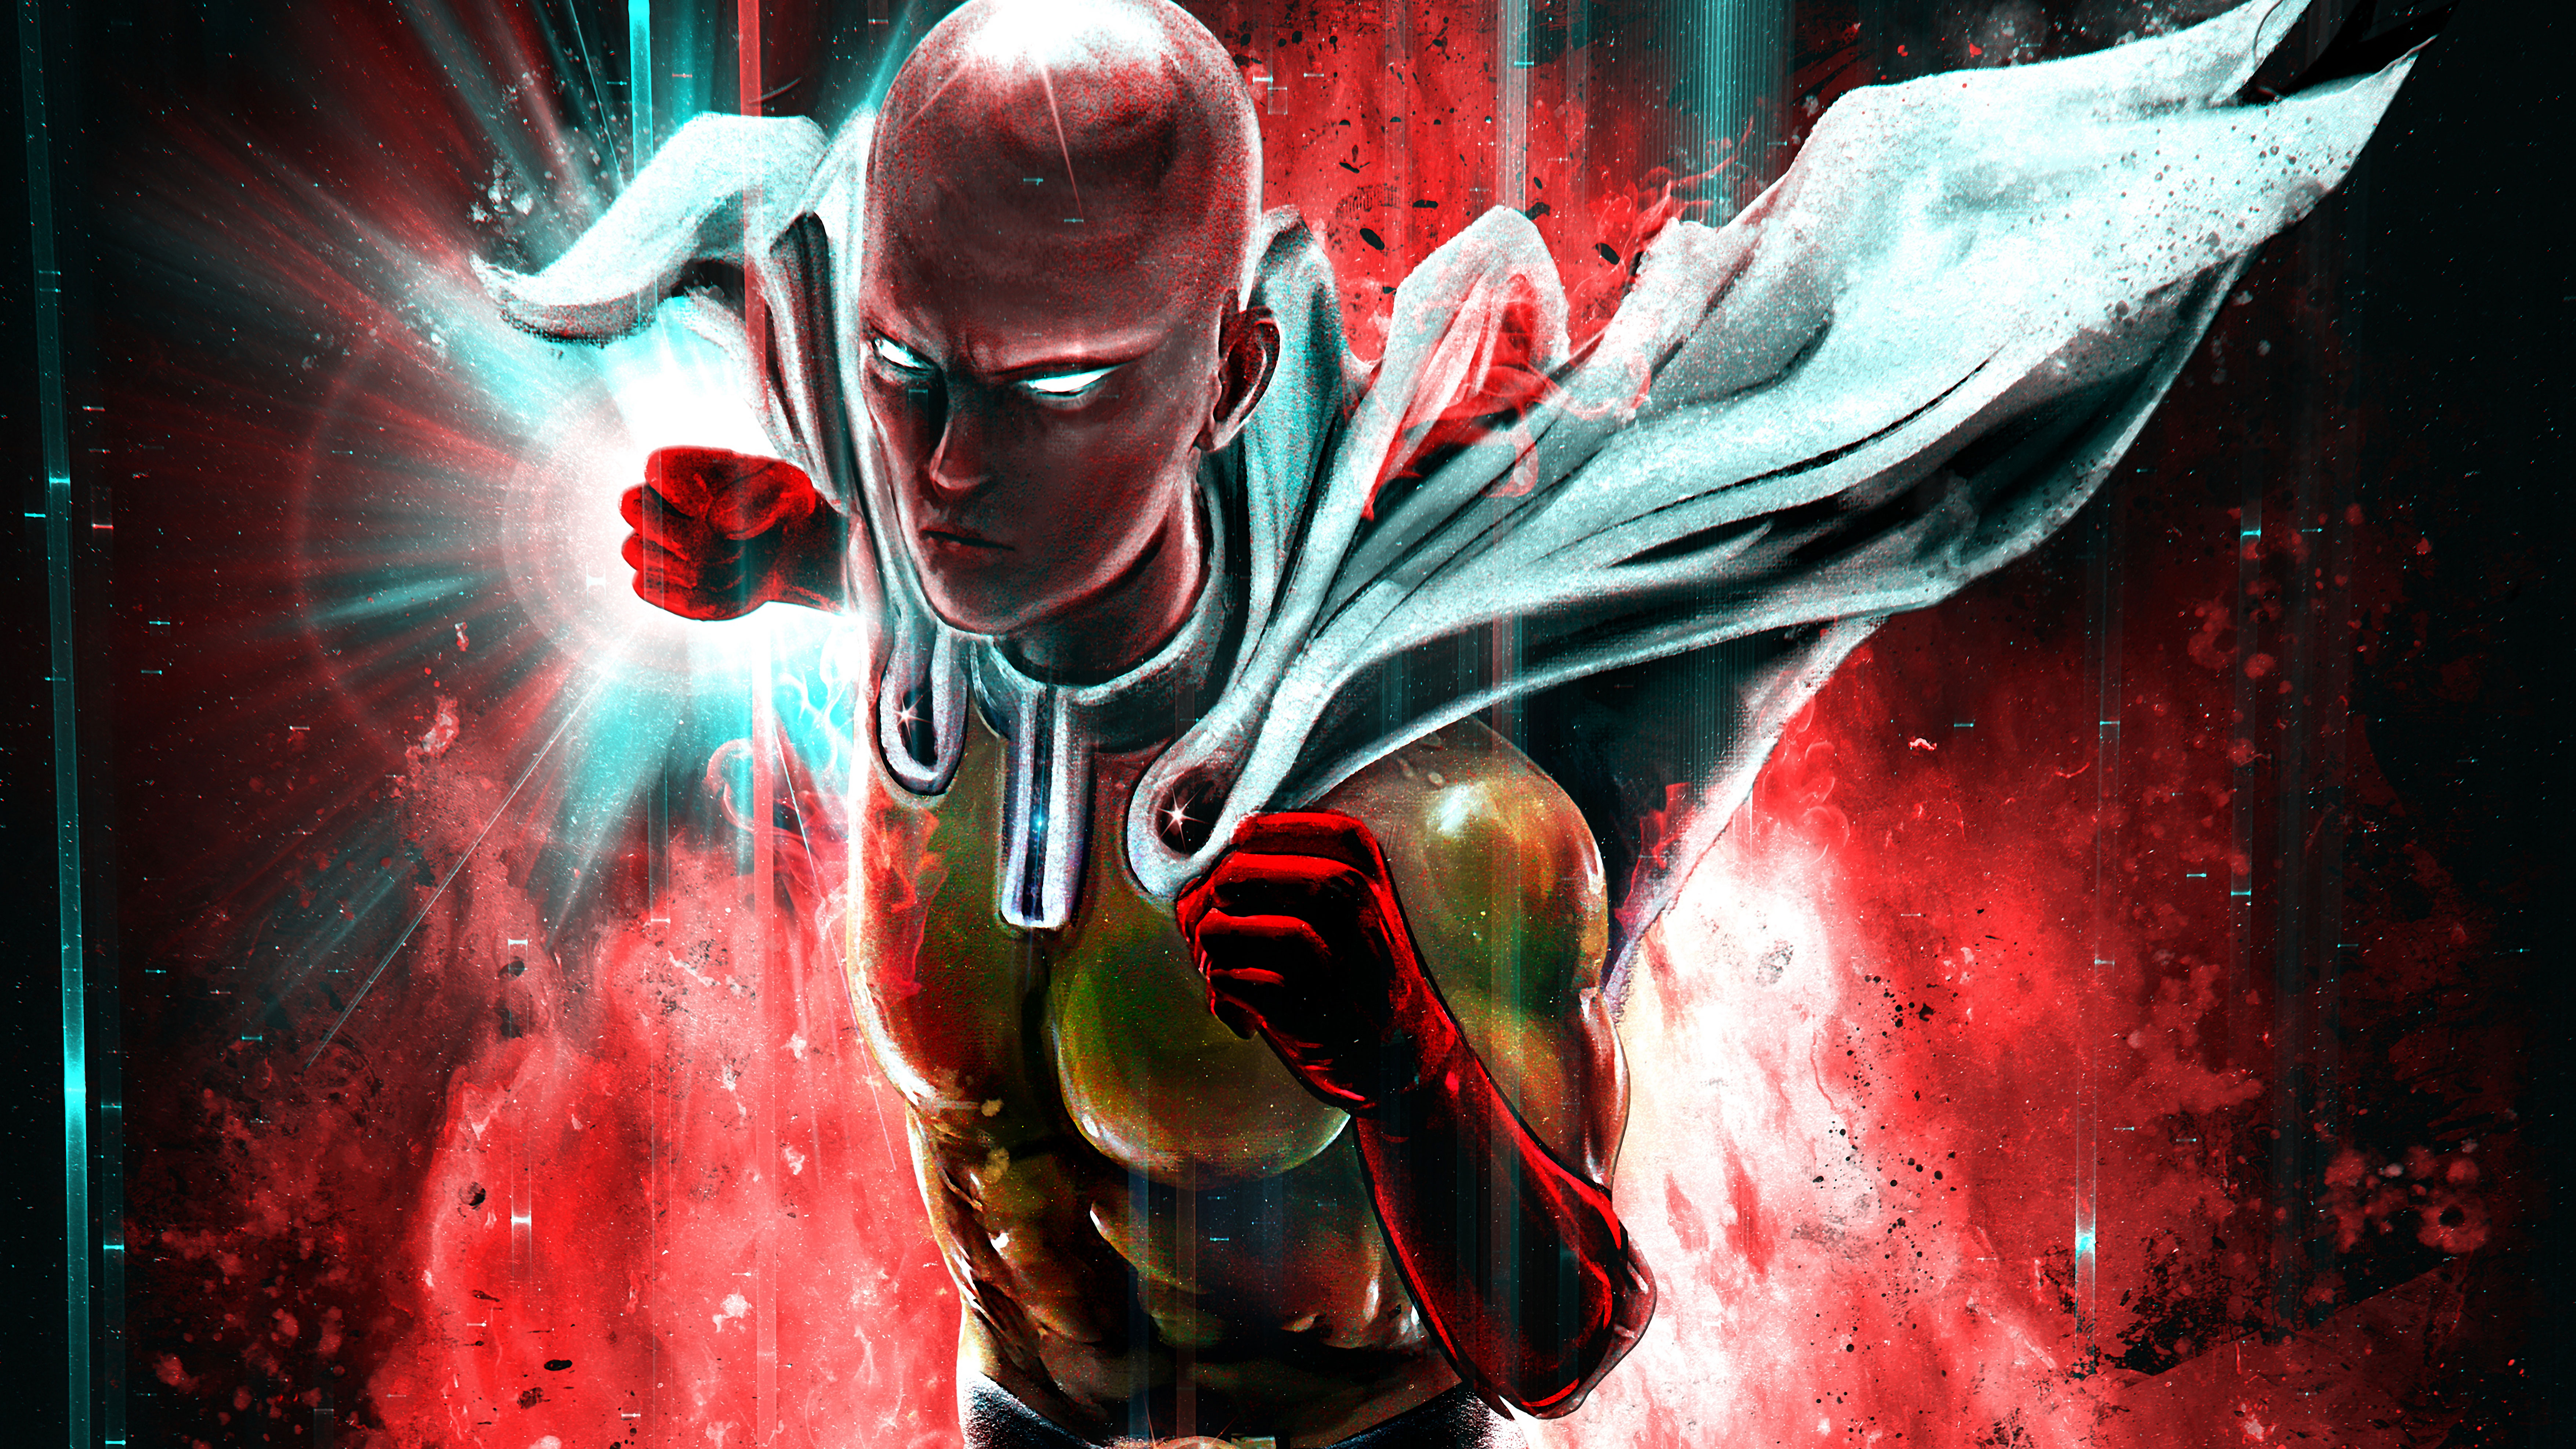 One Punch Man 4k 8k Hd Wallpapers Hd Wallpapers